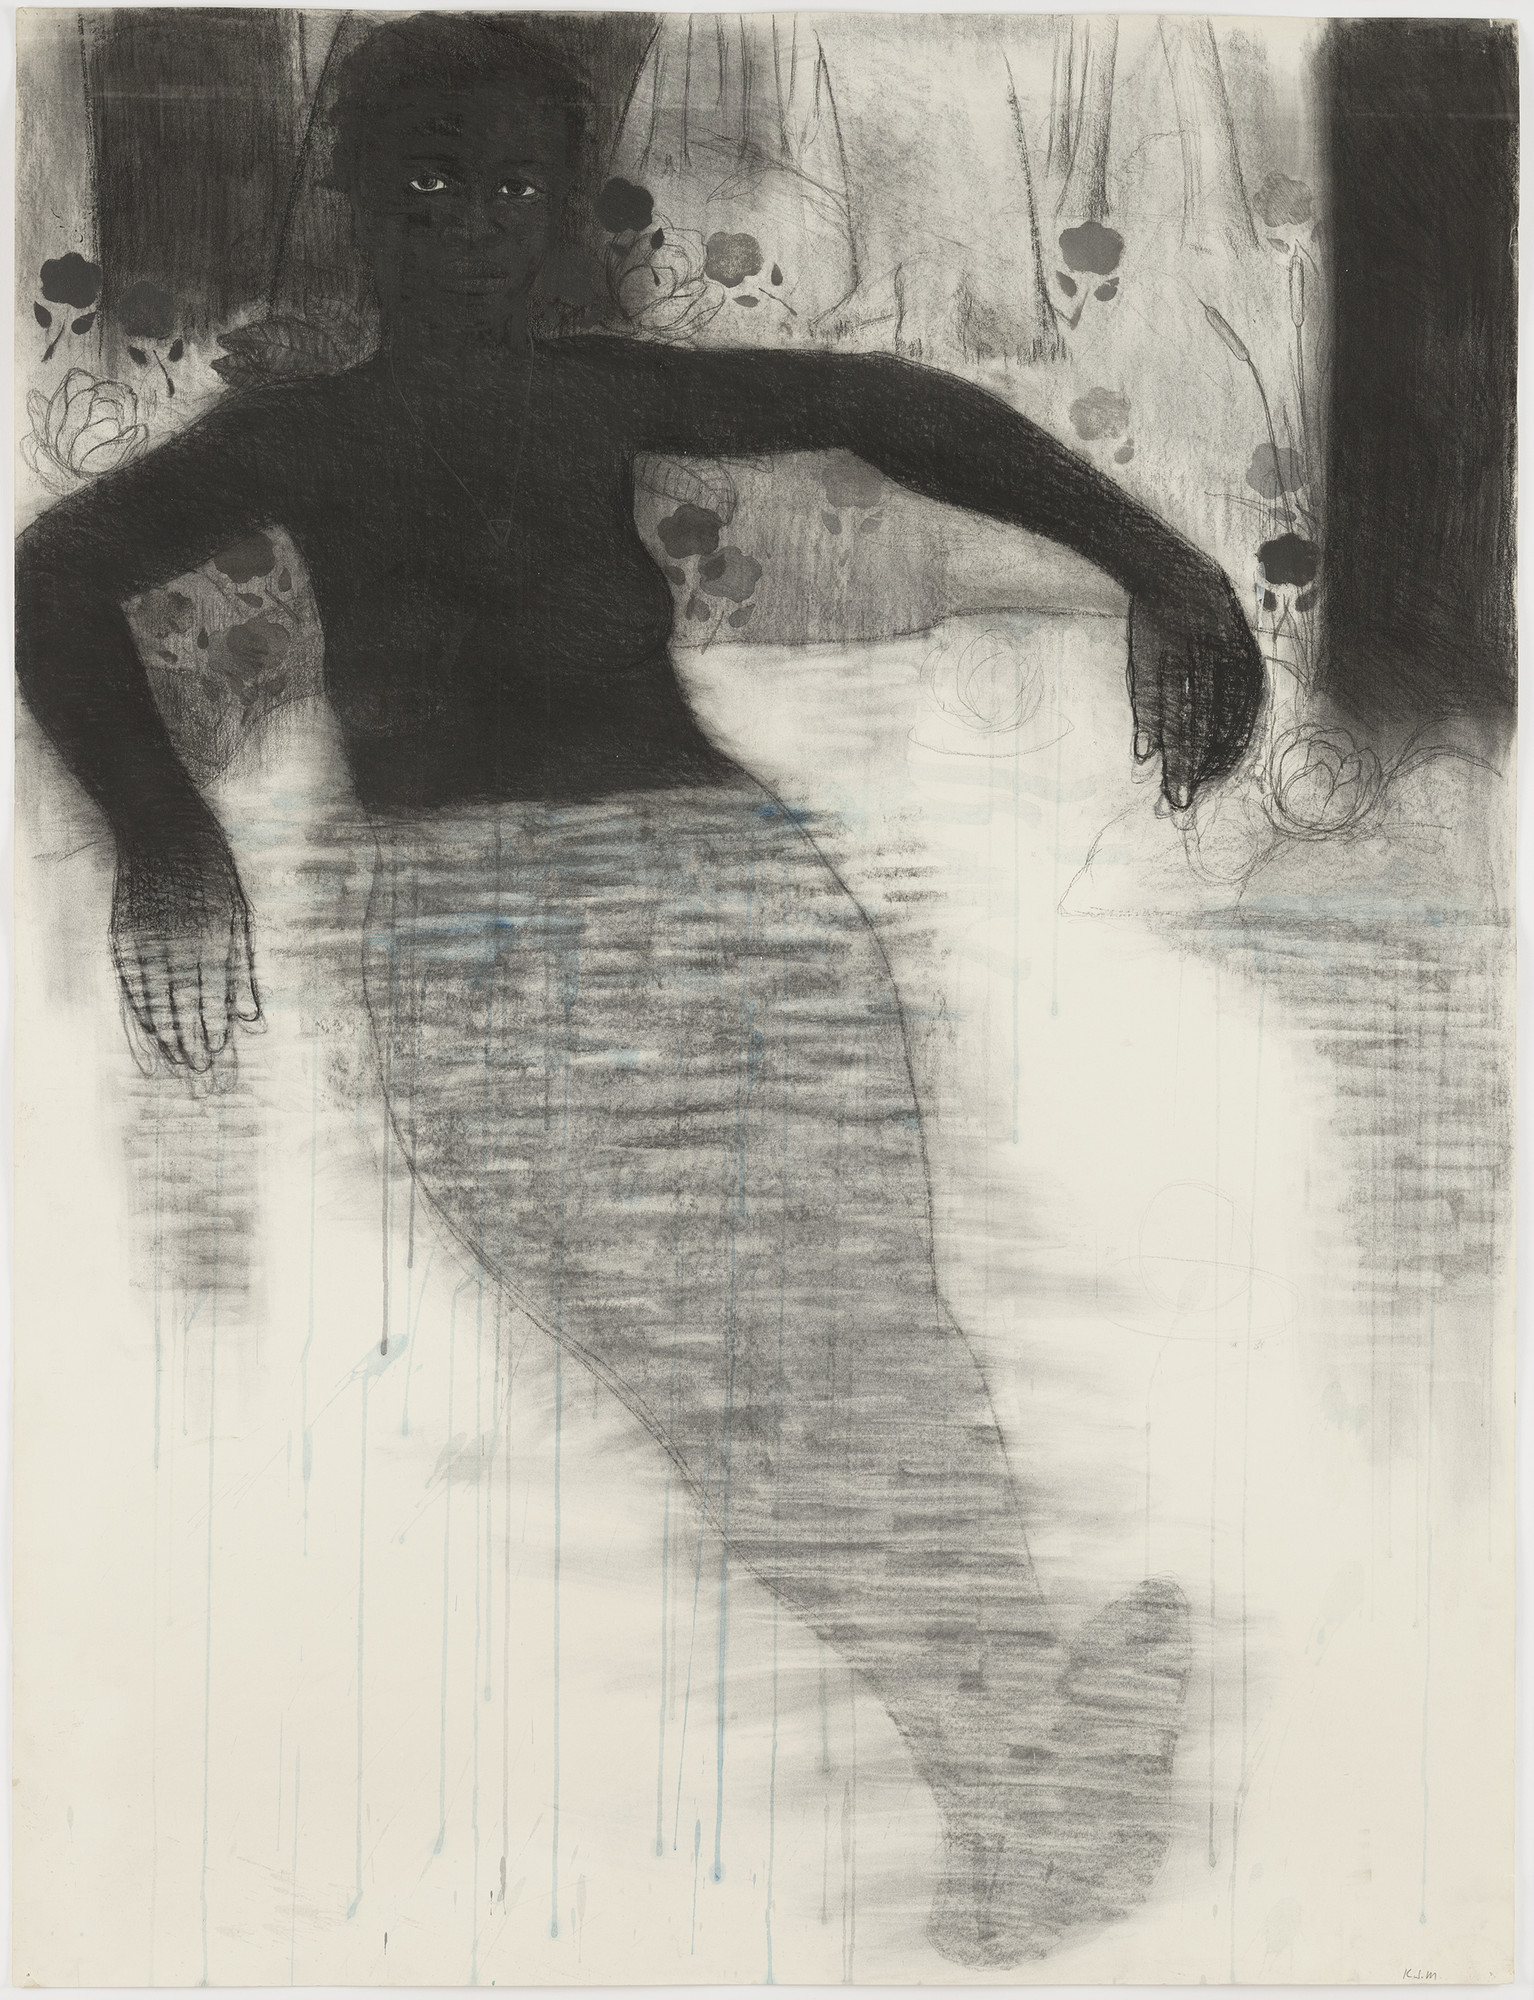 "Kerry James Marshall. Study for Blue Water, Silver Moon. 1991. Conté crayon and watercolor on paper, 49  3⁄4 x 38 1/8"" (126.4 x 96.8 cm). The Museum of Modern Art. Purchased with General Acquisitions Funds and funds provided by The Friends of Education of The Museum of Modern Art. © 2010 Kerry James Marshall"